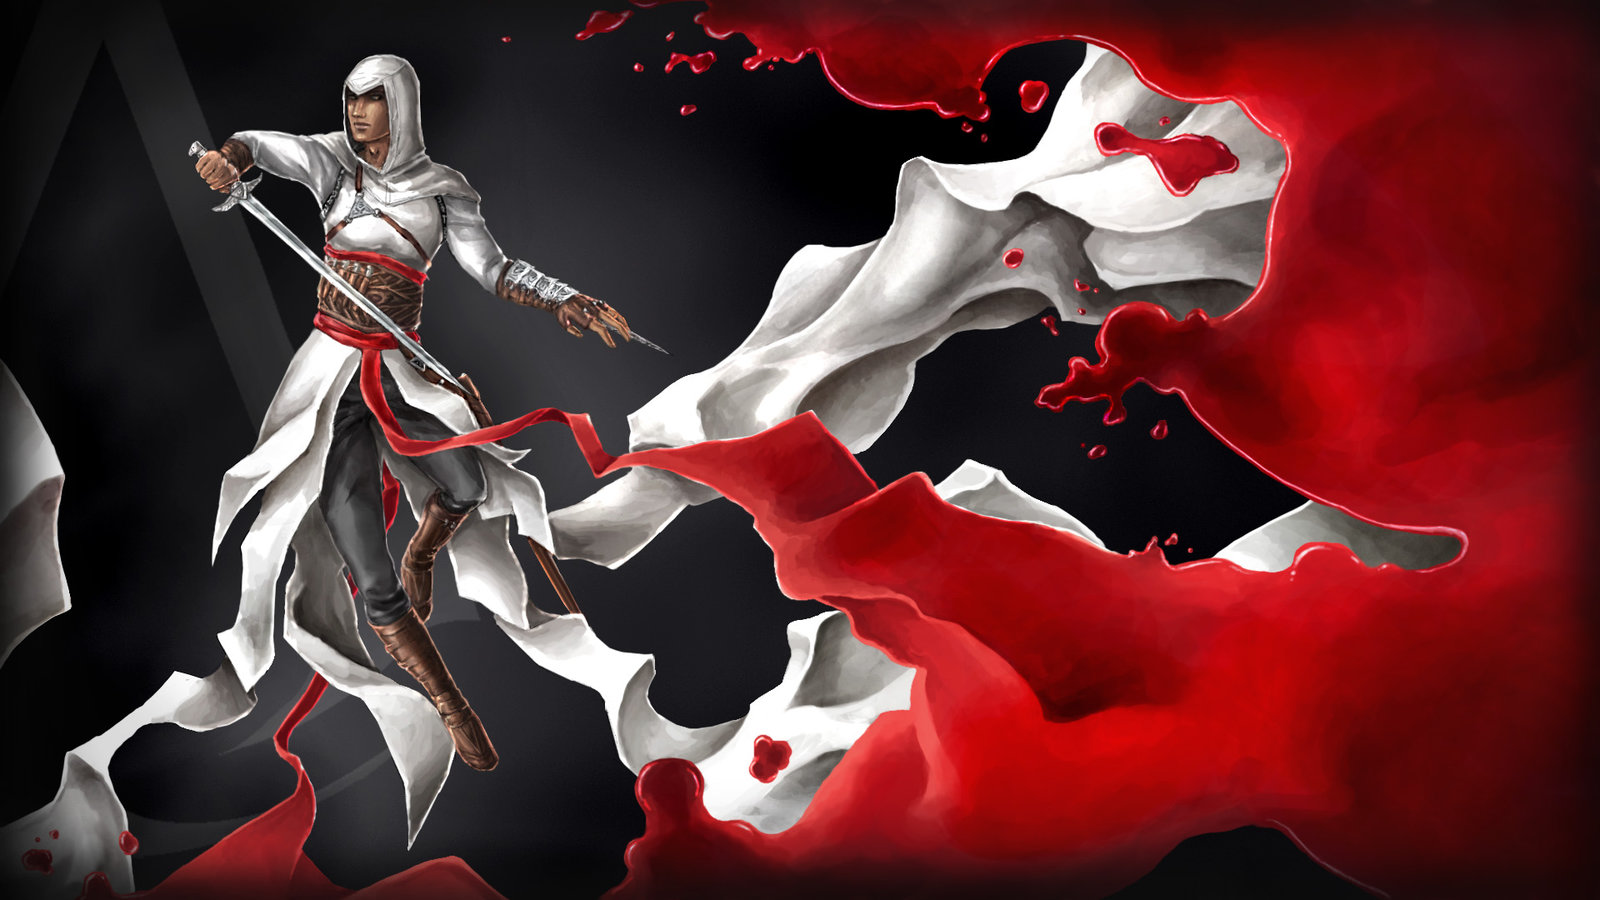 Pin Assassin creed altair ezio connor evelyn wallpapers on 1600x900